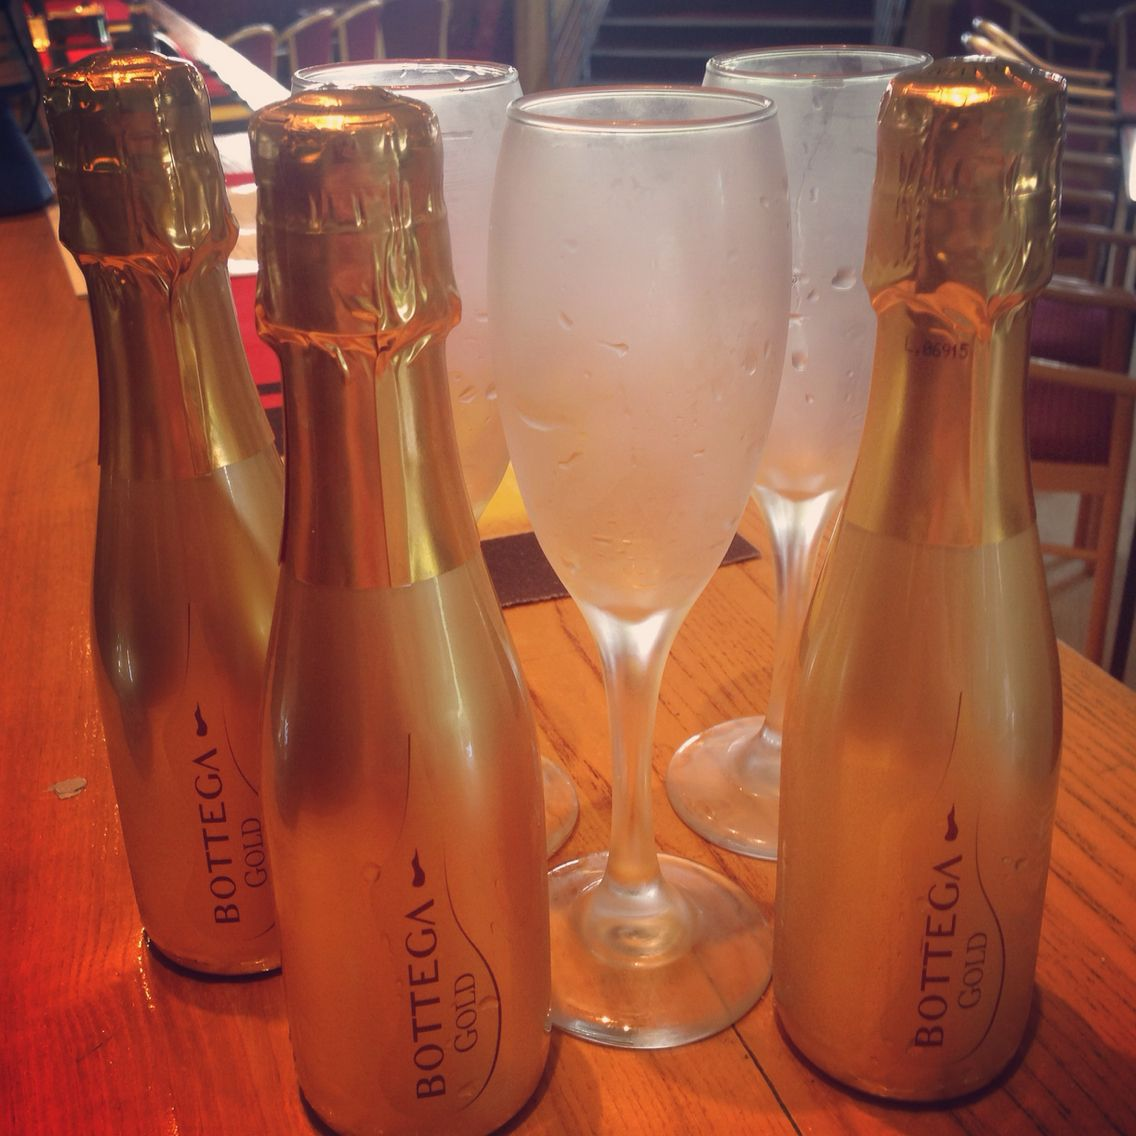 Mini Prosecco bottles - £3.95 | Food and Drinks at MGC | Pinterest